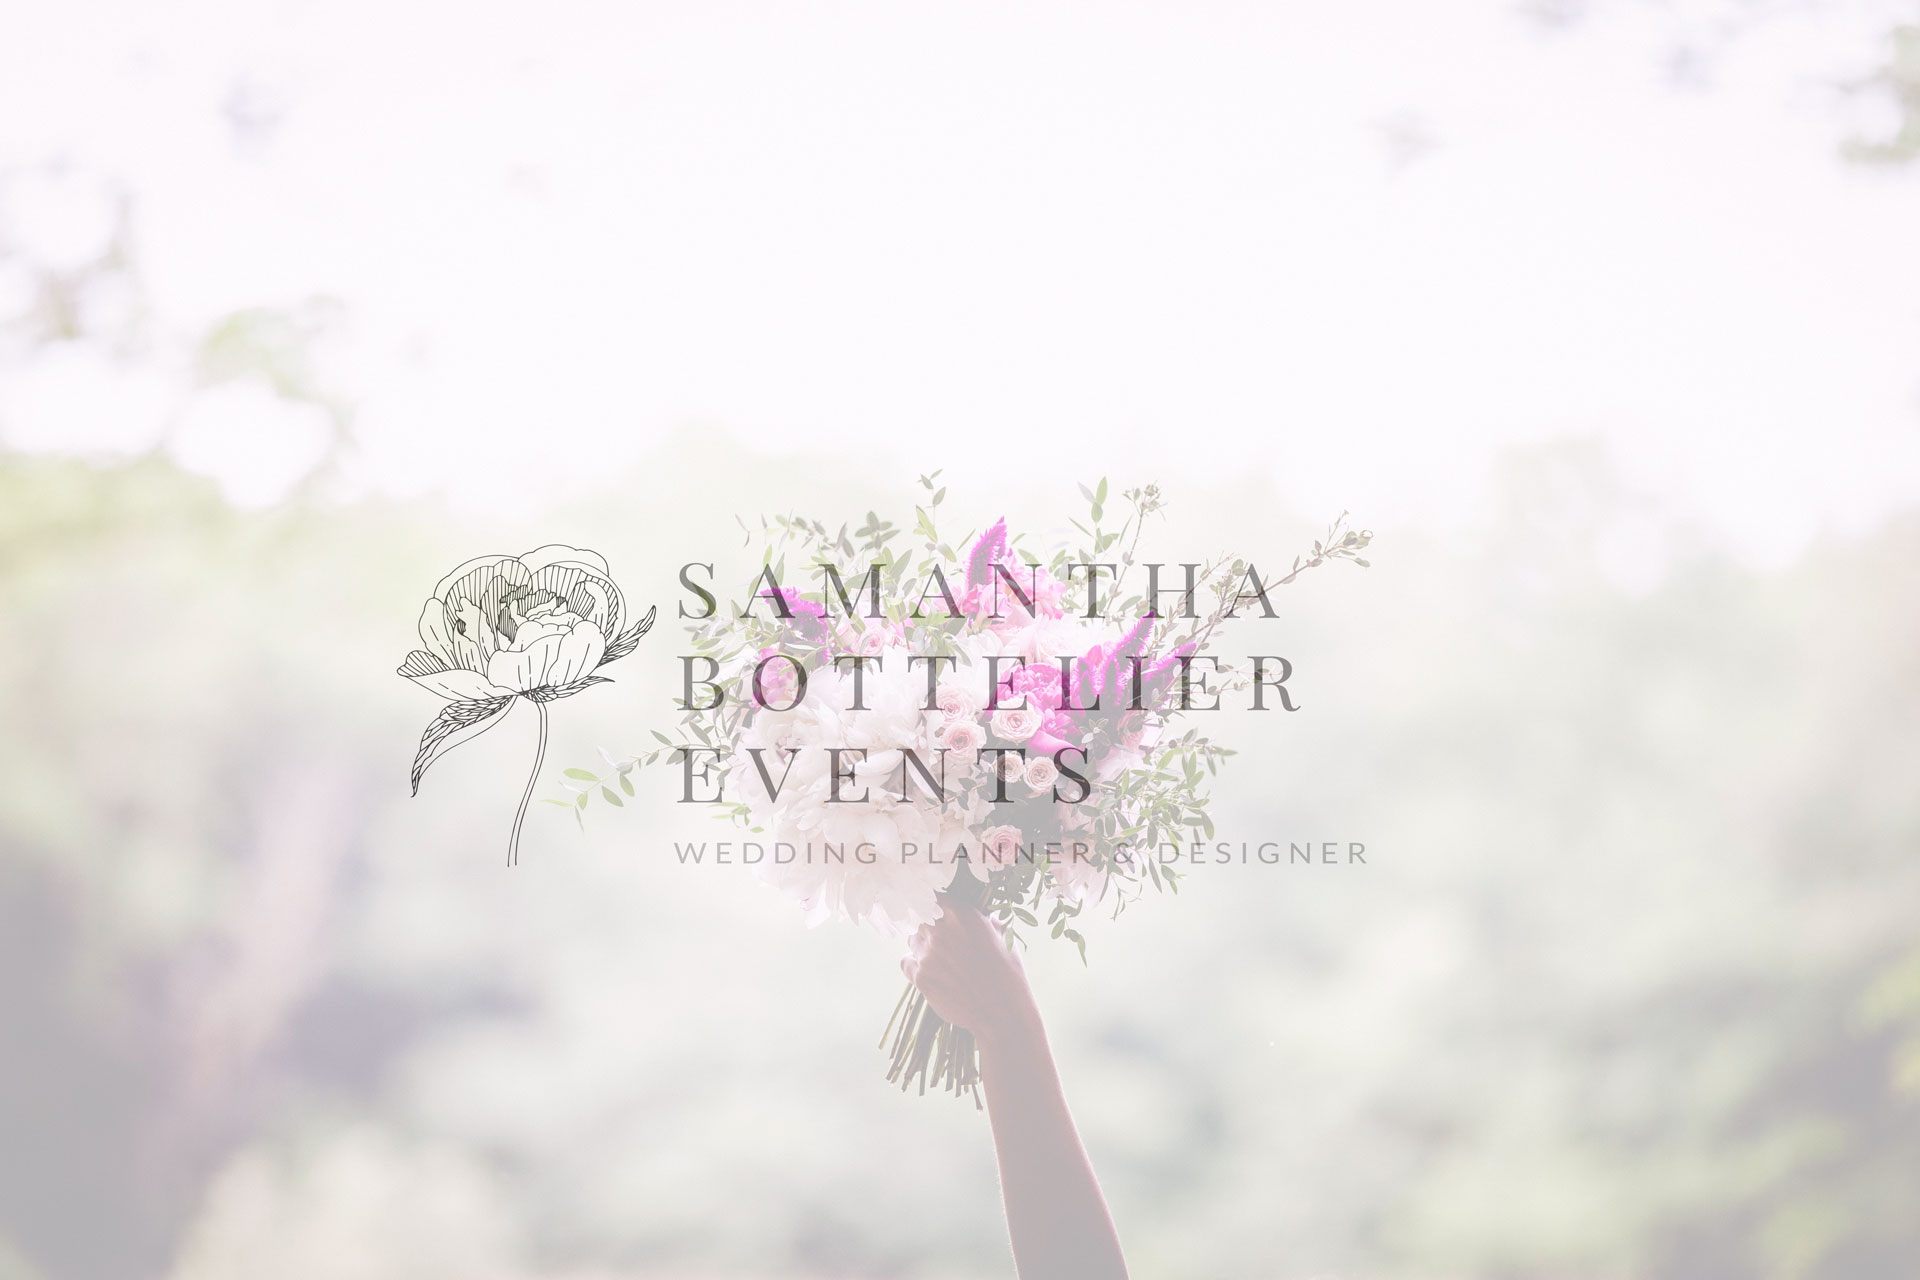 Samantha Bottelier Events